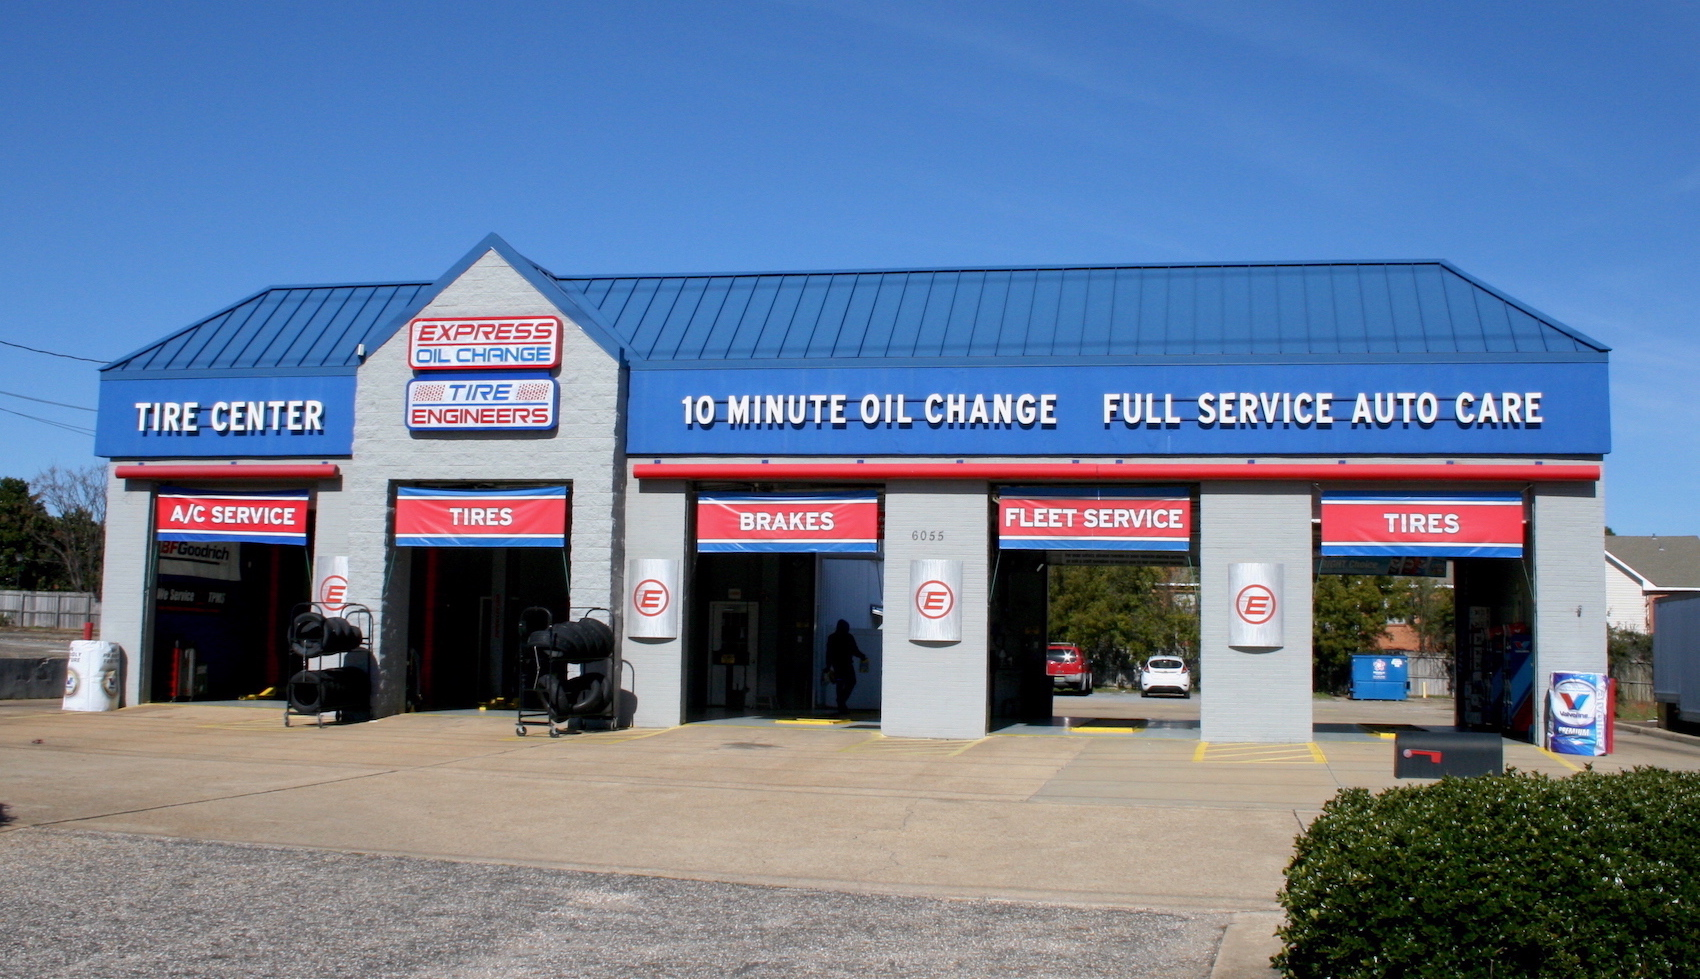 Express Oil Change & Tire Engineers Montgomery, AL - Eastdale store